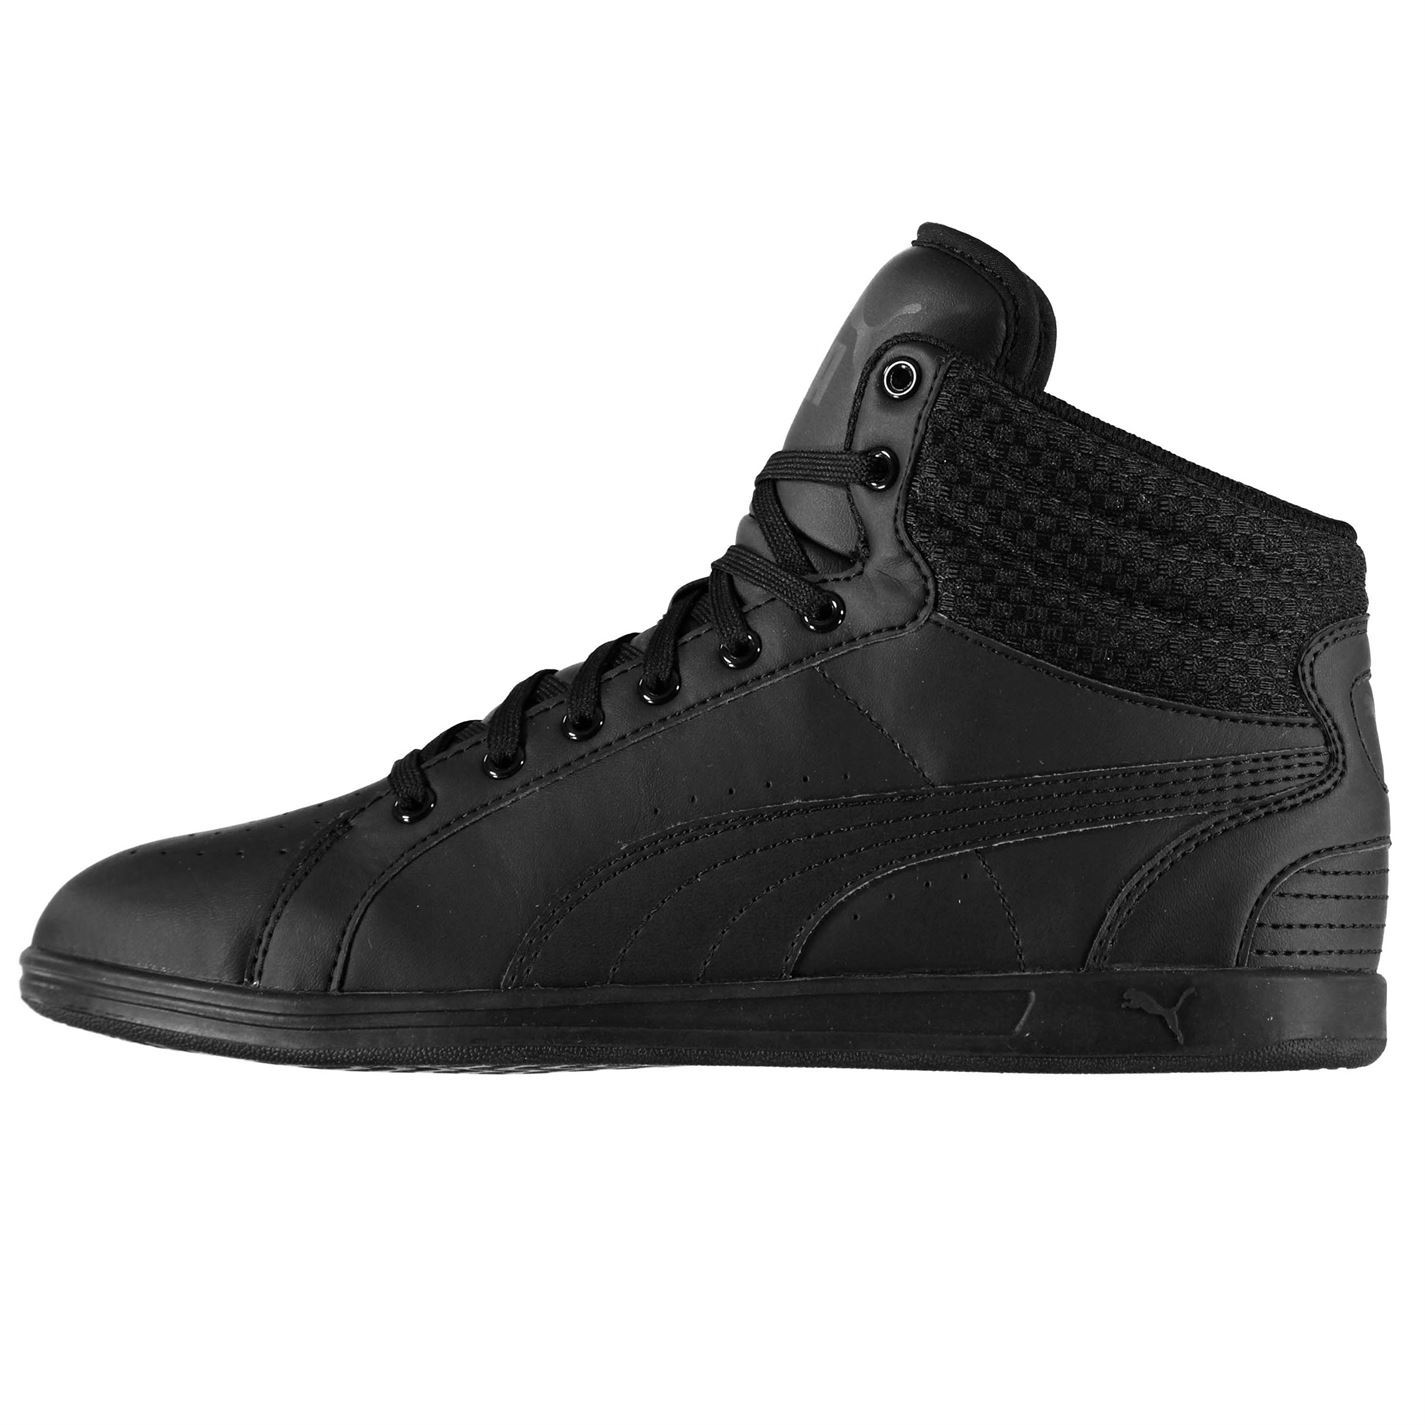 Details about Puma Ikaz Mid Top Trainers Womens Black Sports Trainers Sneakers